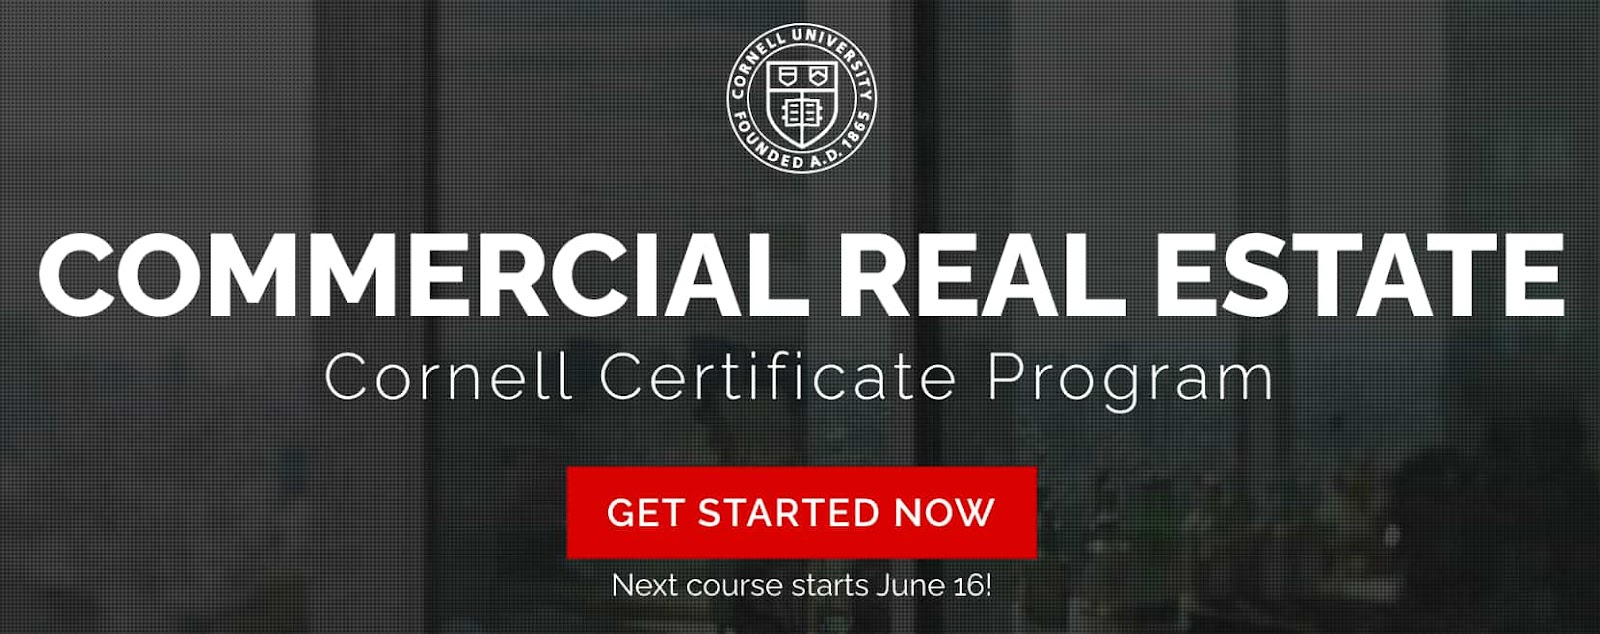 Real Estate Courses Cornell Commercial Real Estate